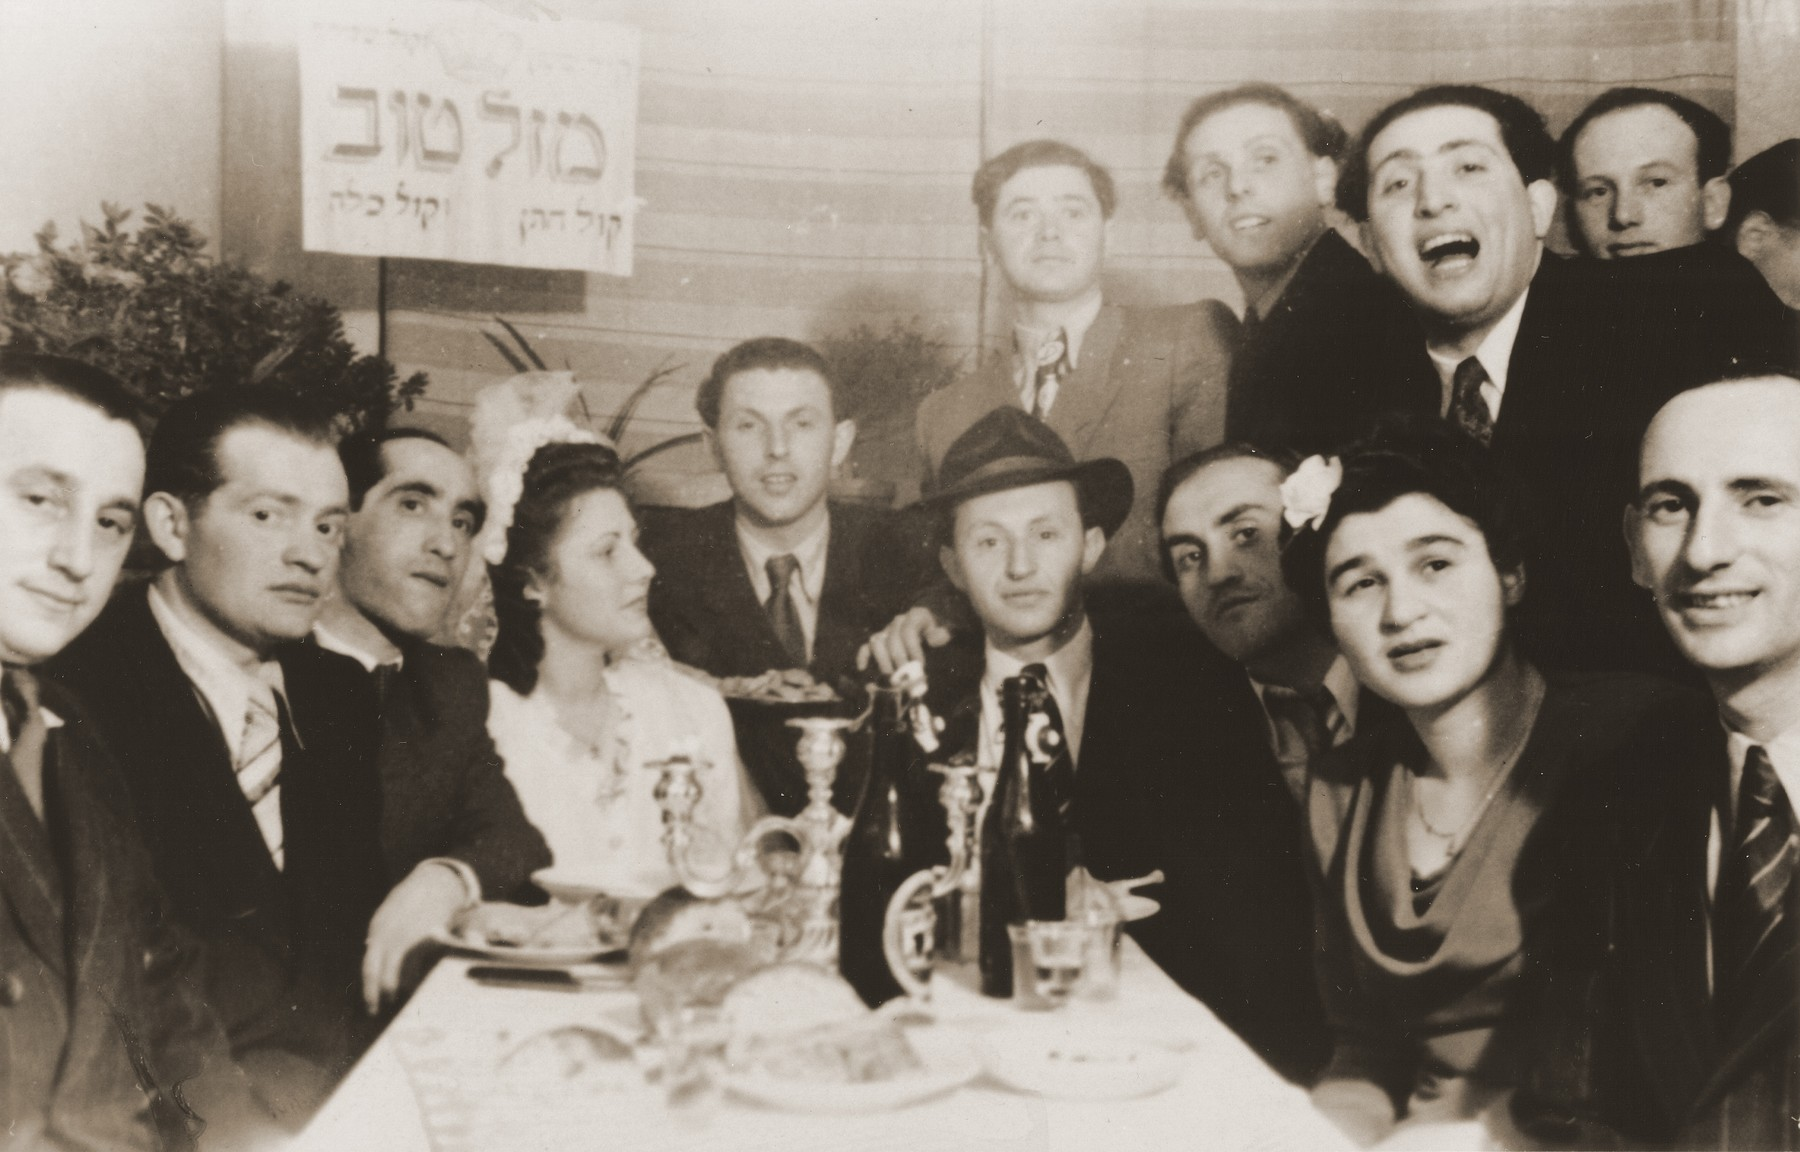 """Jewish DPs gather around a table to celebrate the wedding of Tadek Blacharowicz and Esther Rosenberg.  Pictured at the head of the table are the bride and the groom.  Also pictured are Henryk and Eugenia Lanceter (seated first and second on the right), Moishe Rafilowicz (third from the left), Szaje Rosenberg (between the bride and the groom) and Max Bocher (top row, second from the right).    The Hebrew sign at the top reads, """"Congratulations, the voice of the groom, the voice of the bride."""